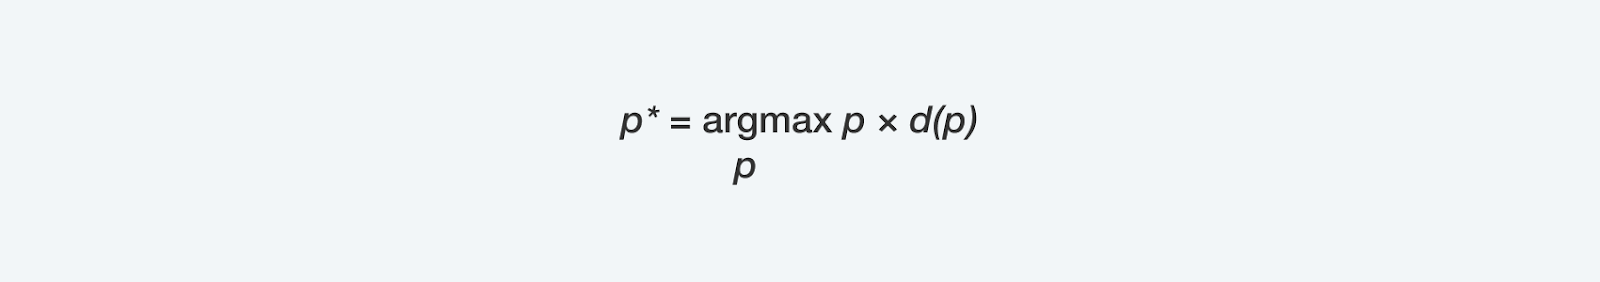 formula dynamic pricing algorithm